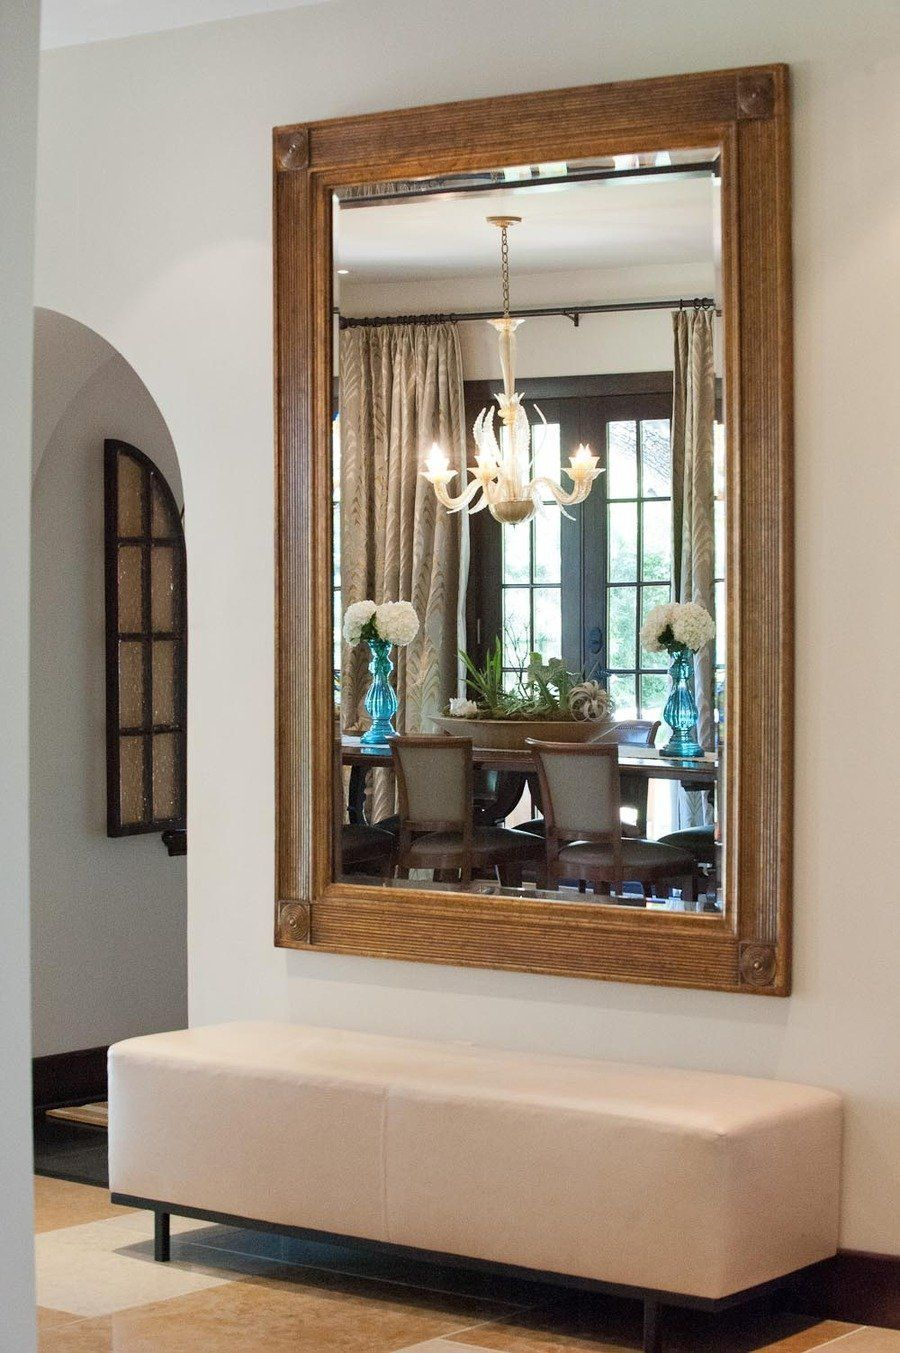 At Home With Kendra Scott Foyer Design Home Decor Home